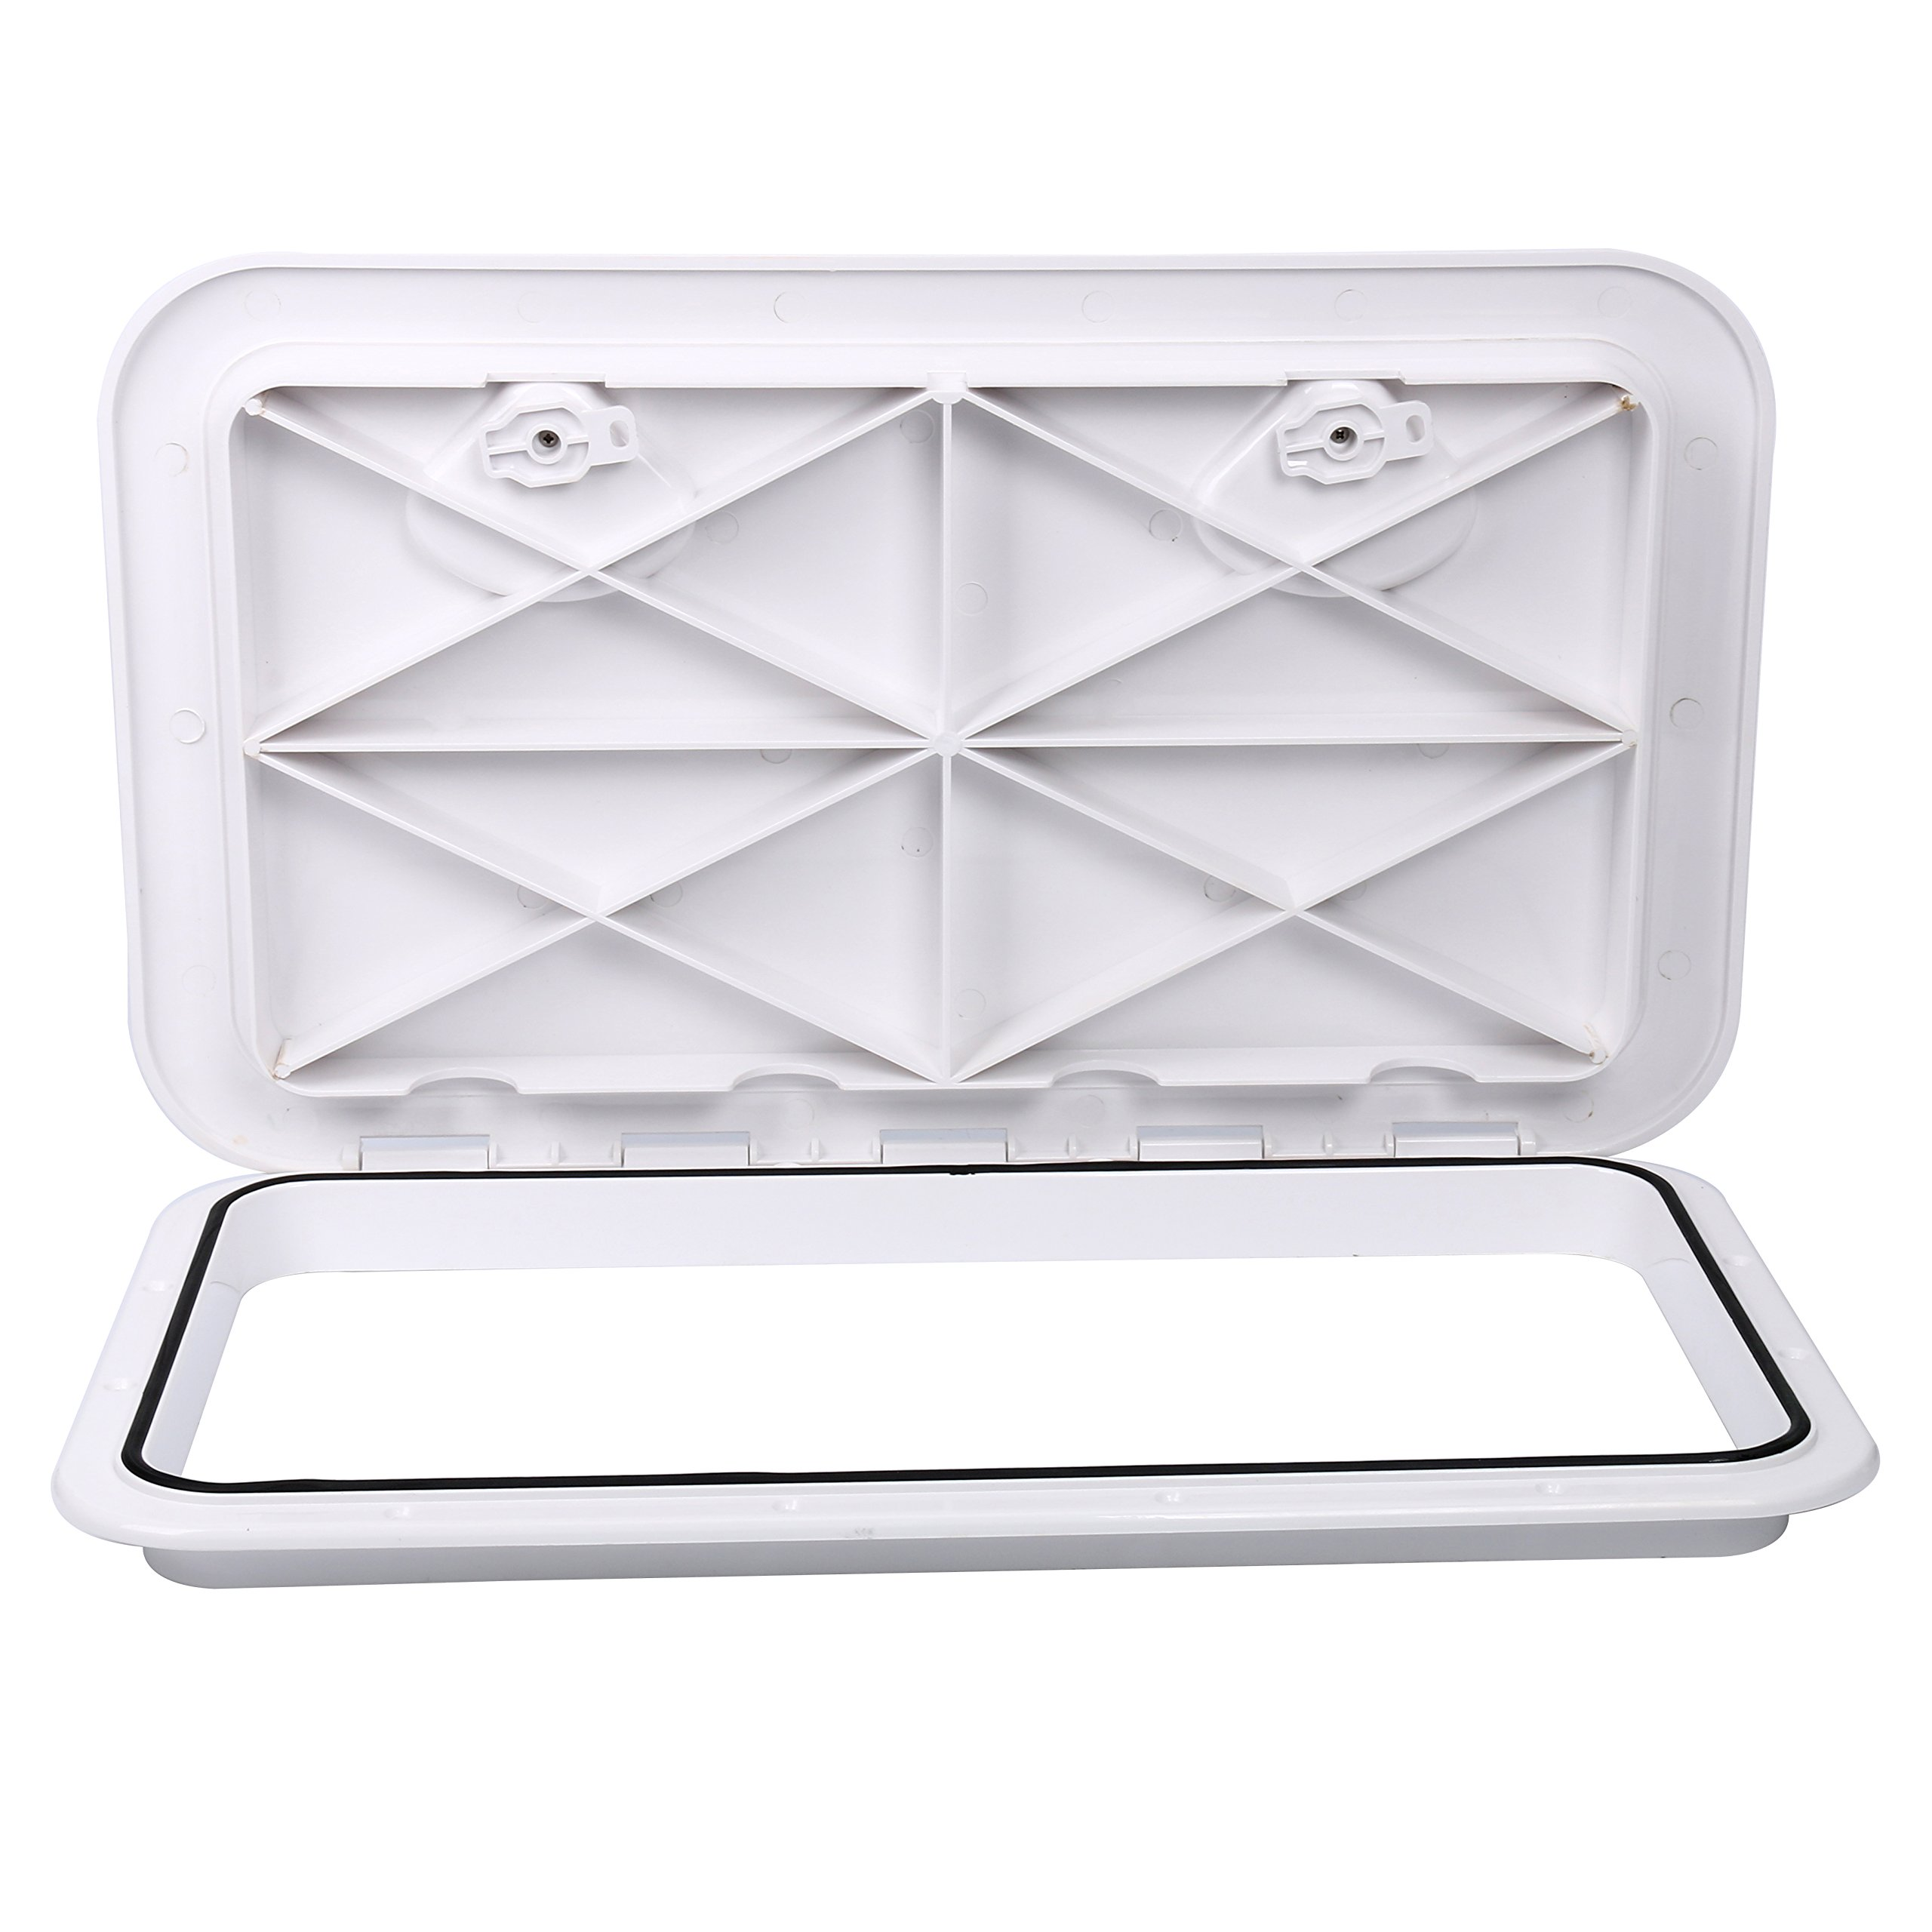 Amarine-made Marine Deck Hatch Boat Deck Hatch Access Hatch & Lid 24'' X 14'' - White by Amarine-made